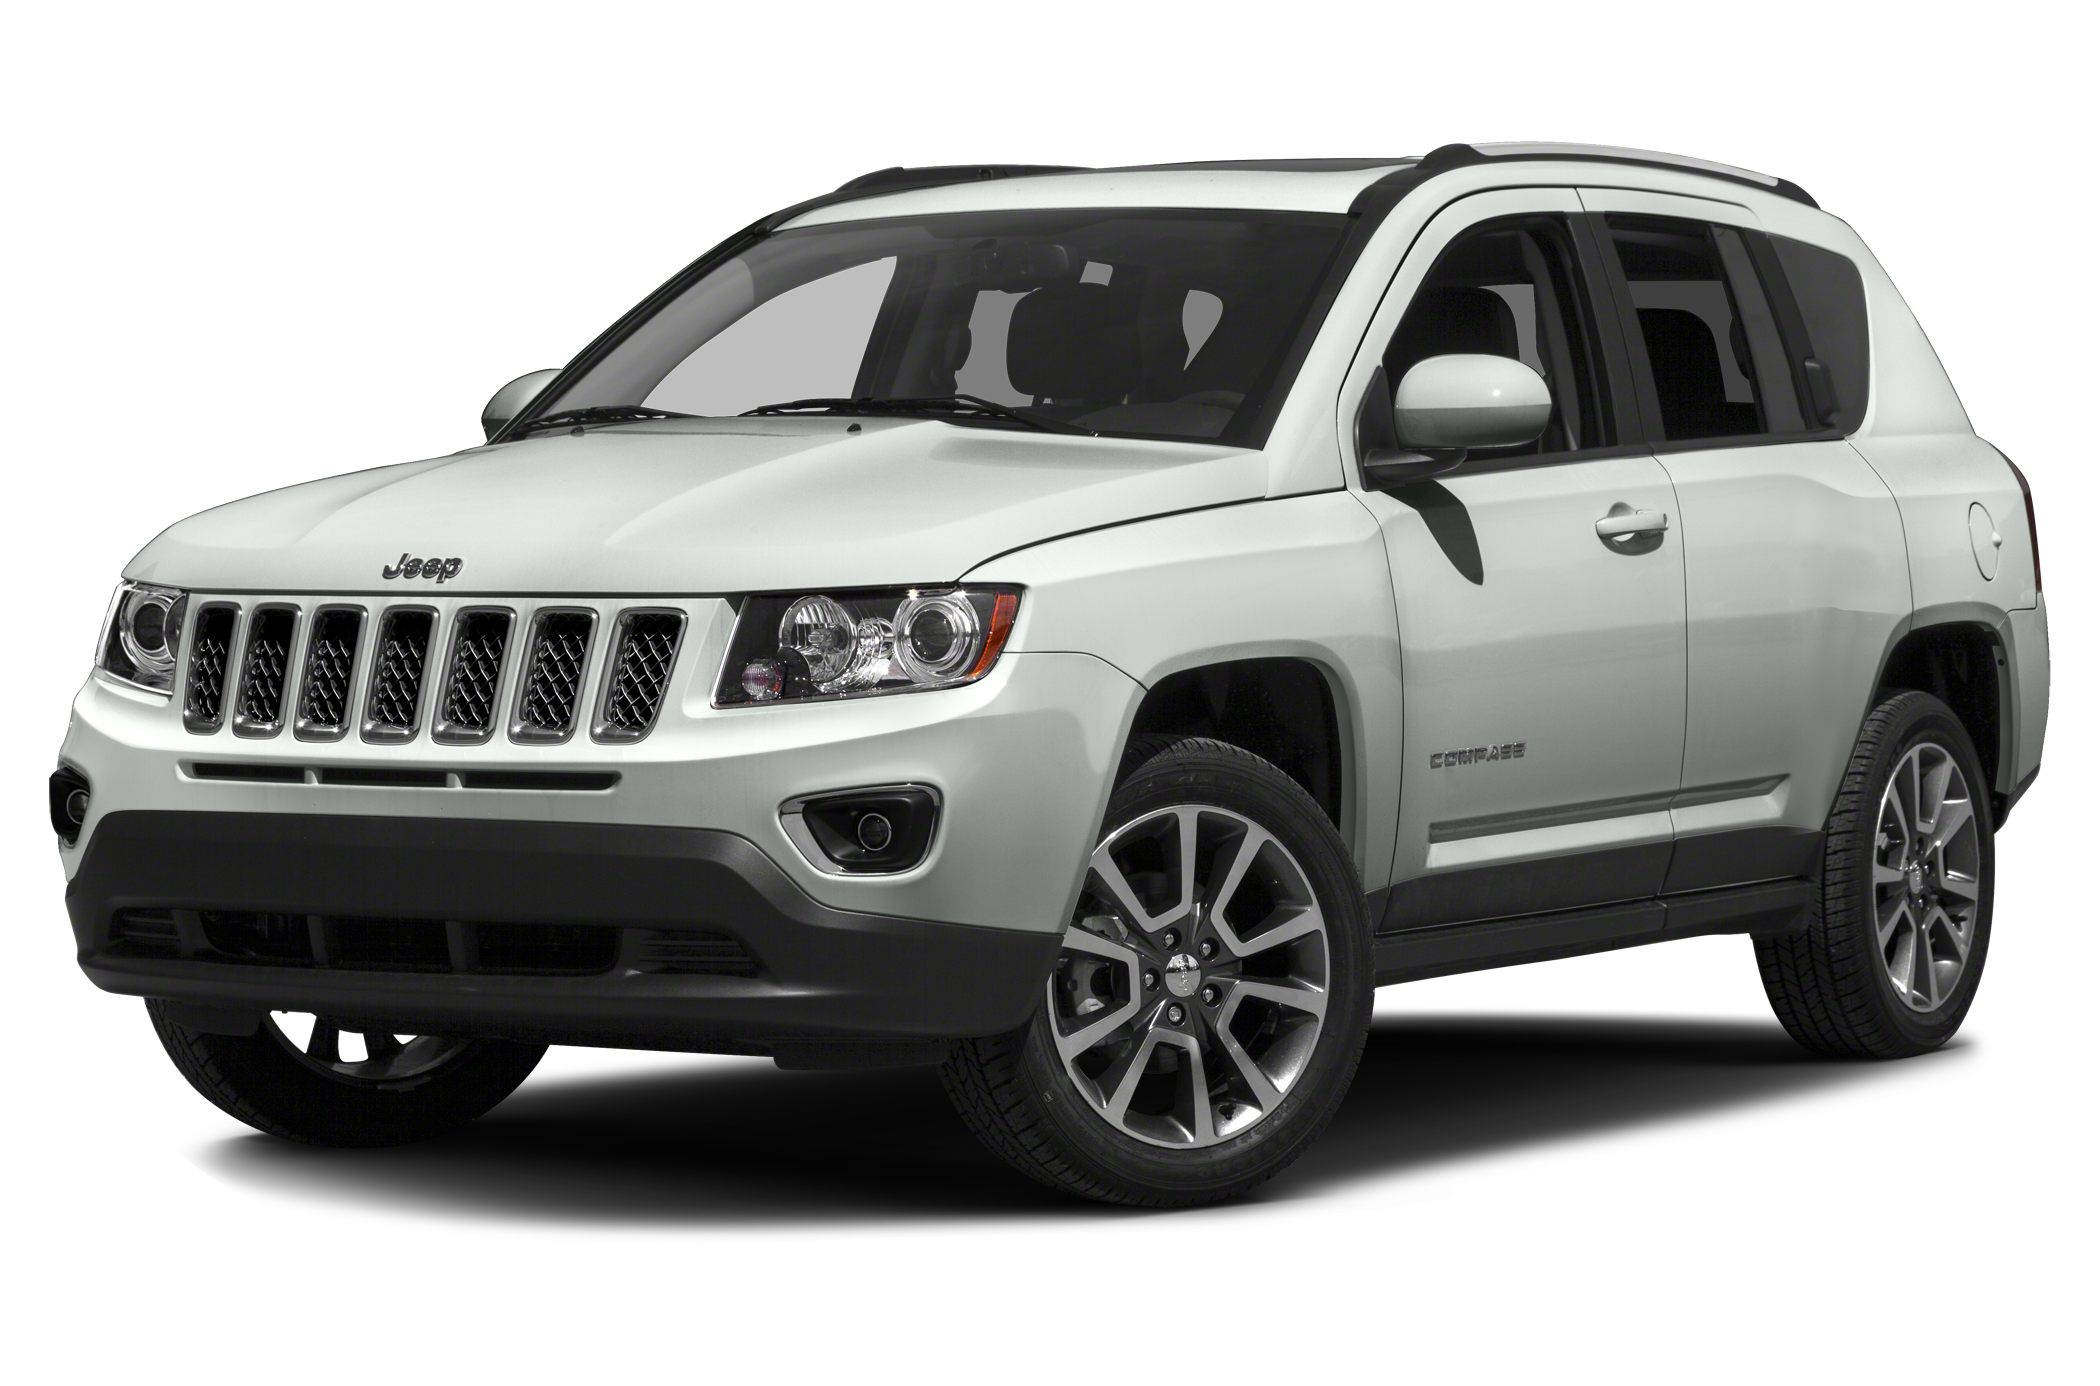 2015 Jeep Compass Latitude SUV for sale in Webster for $24,885 with 2 miles.